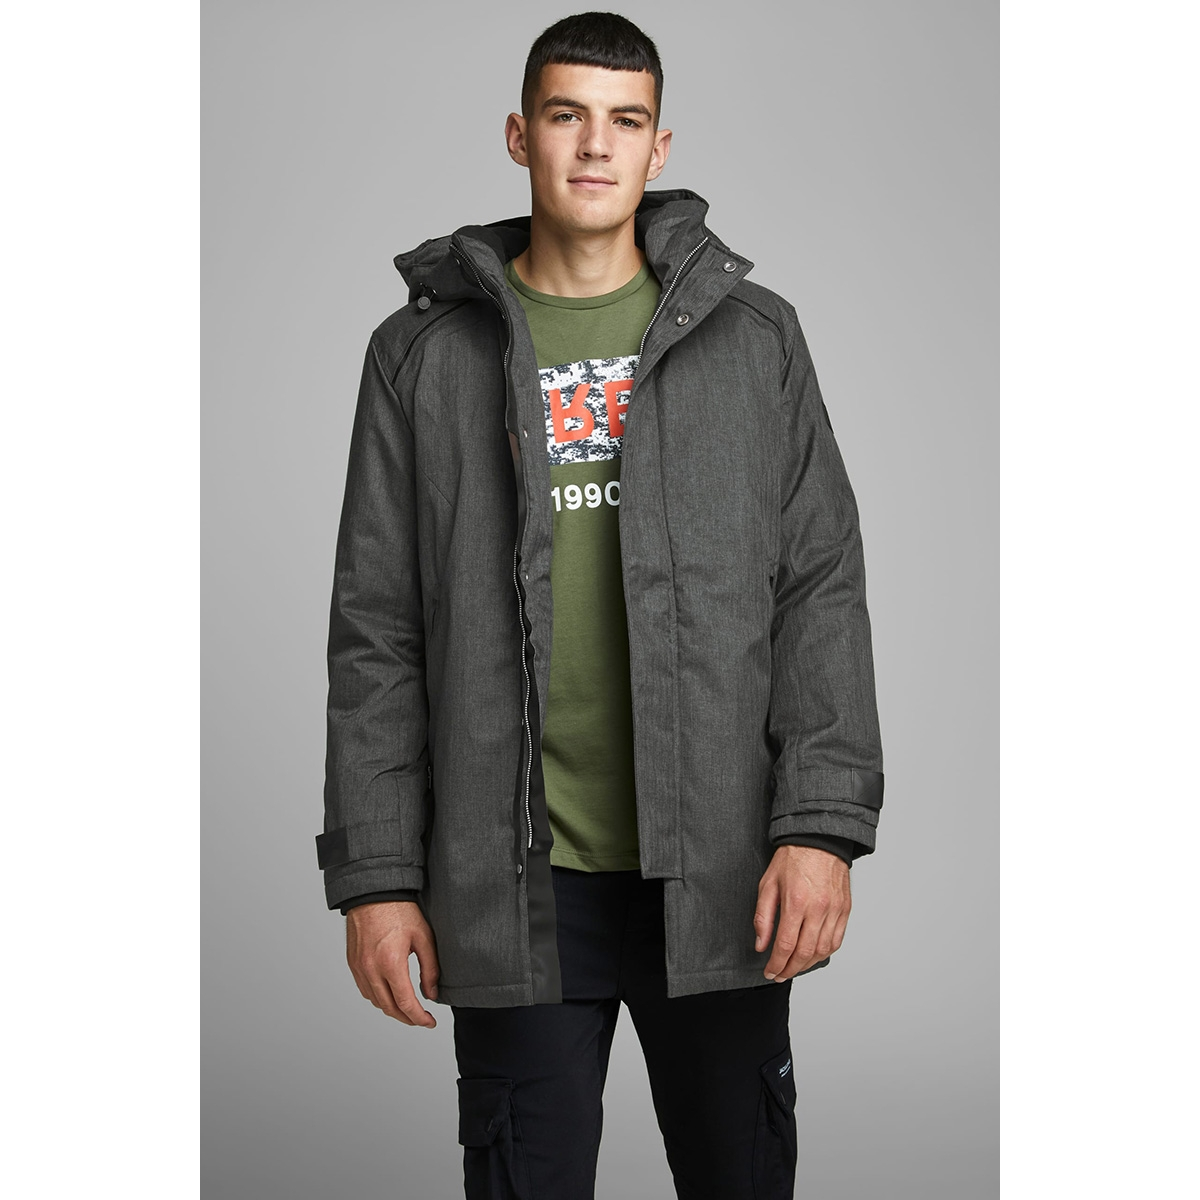 jcofigure parka sts 12157684 jack & jones jas black/melange